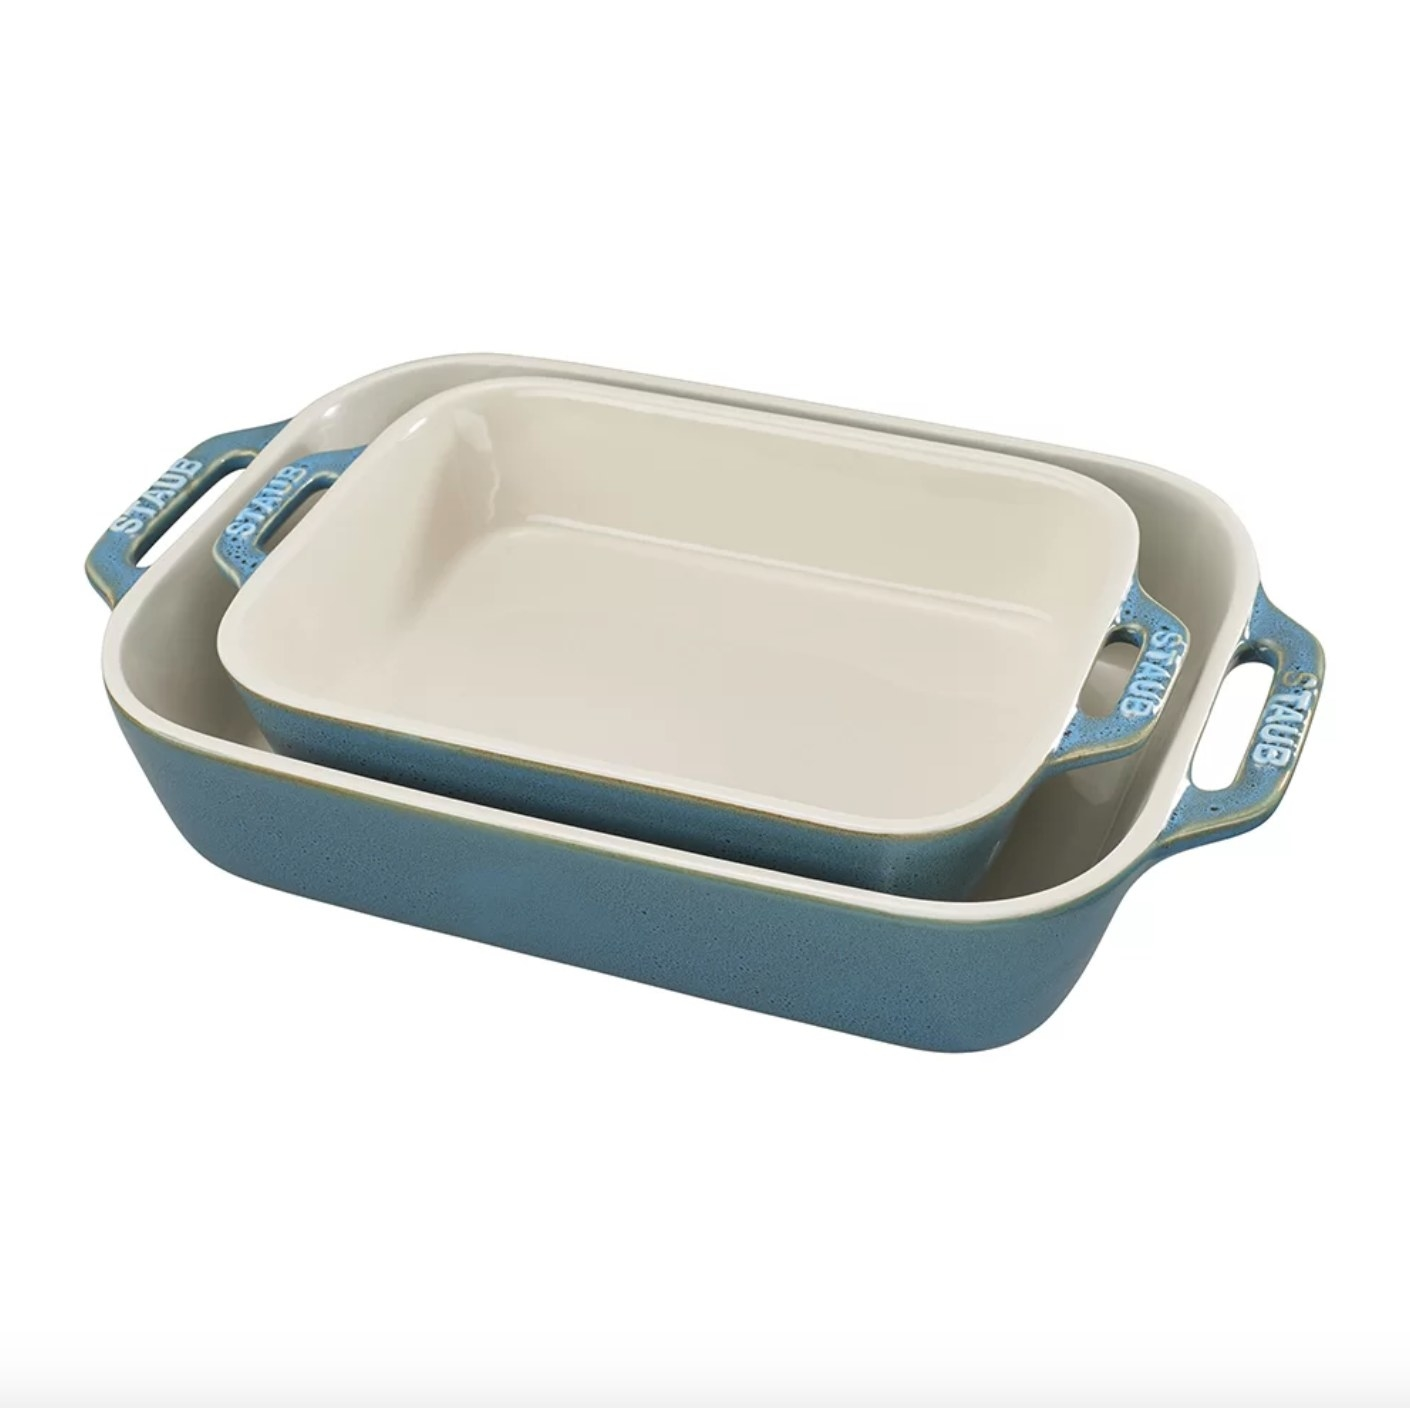 The Staub baking dish in rustic turquoise